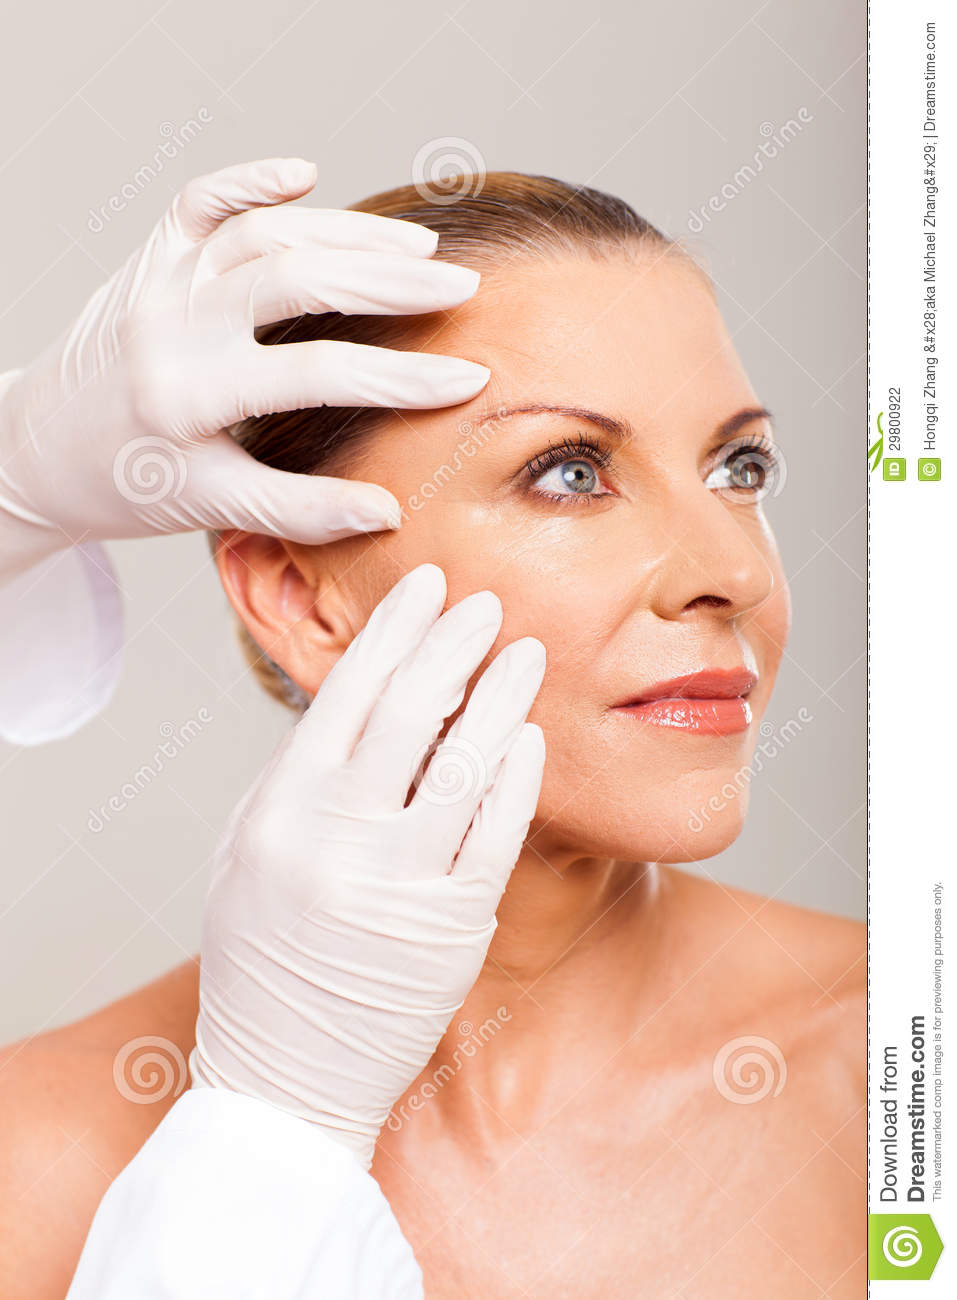 Doctor Skin Check Stock Photography Image 29800922